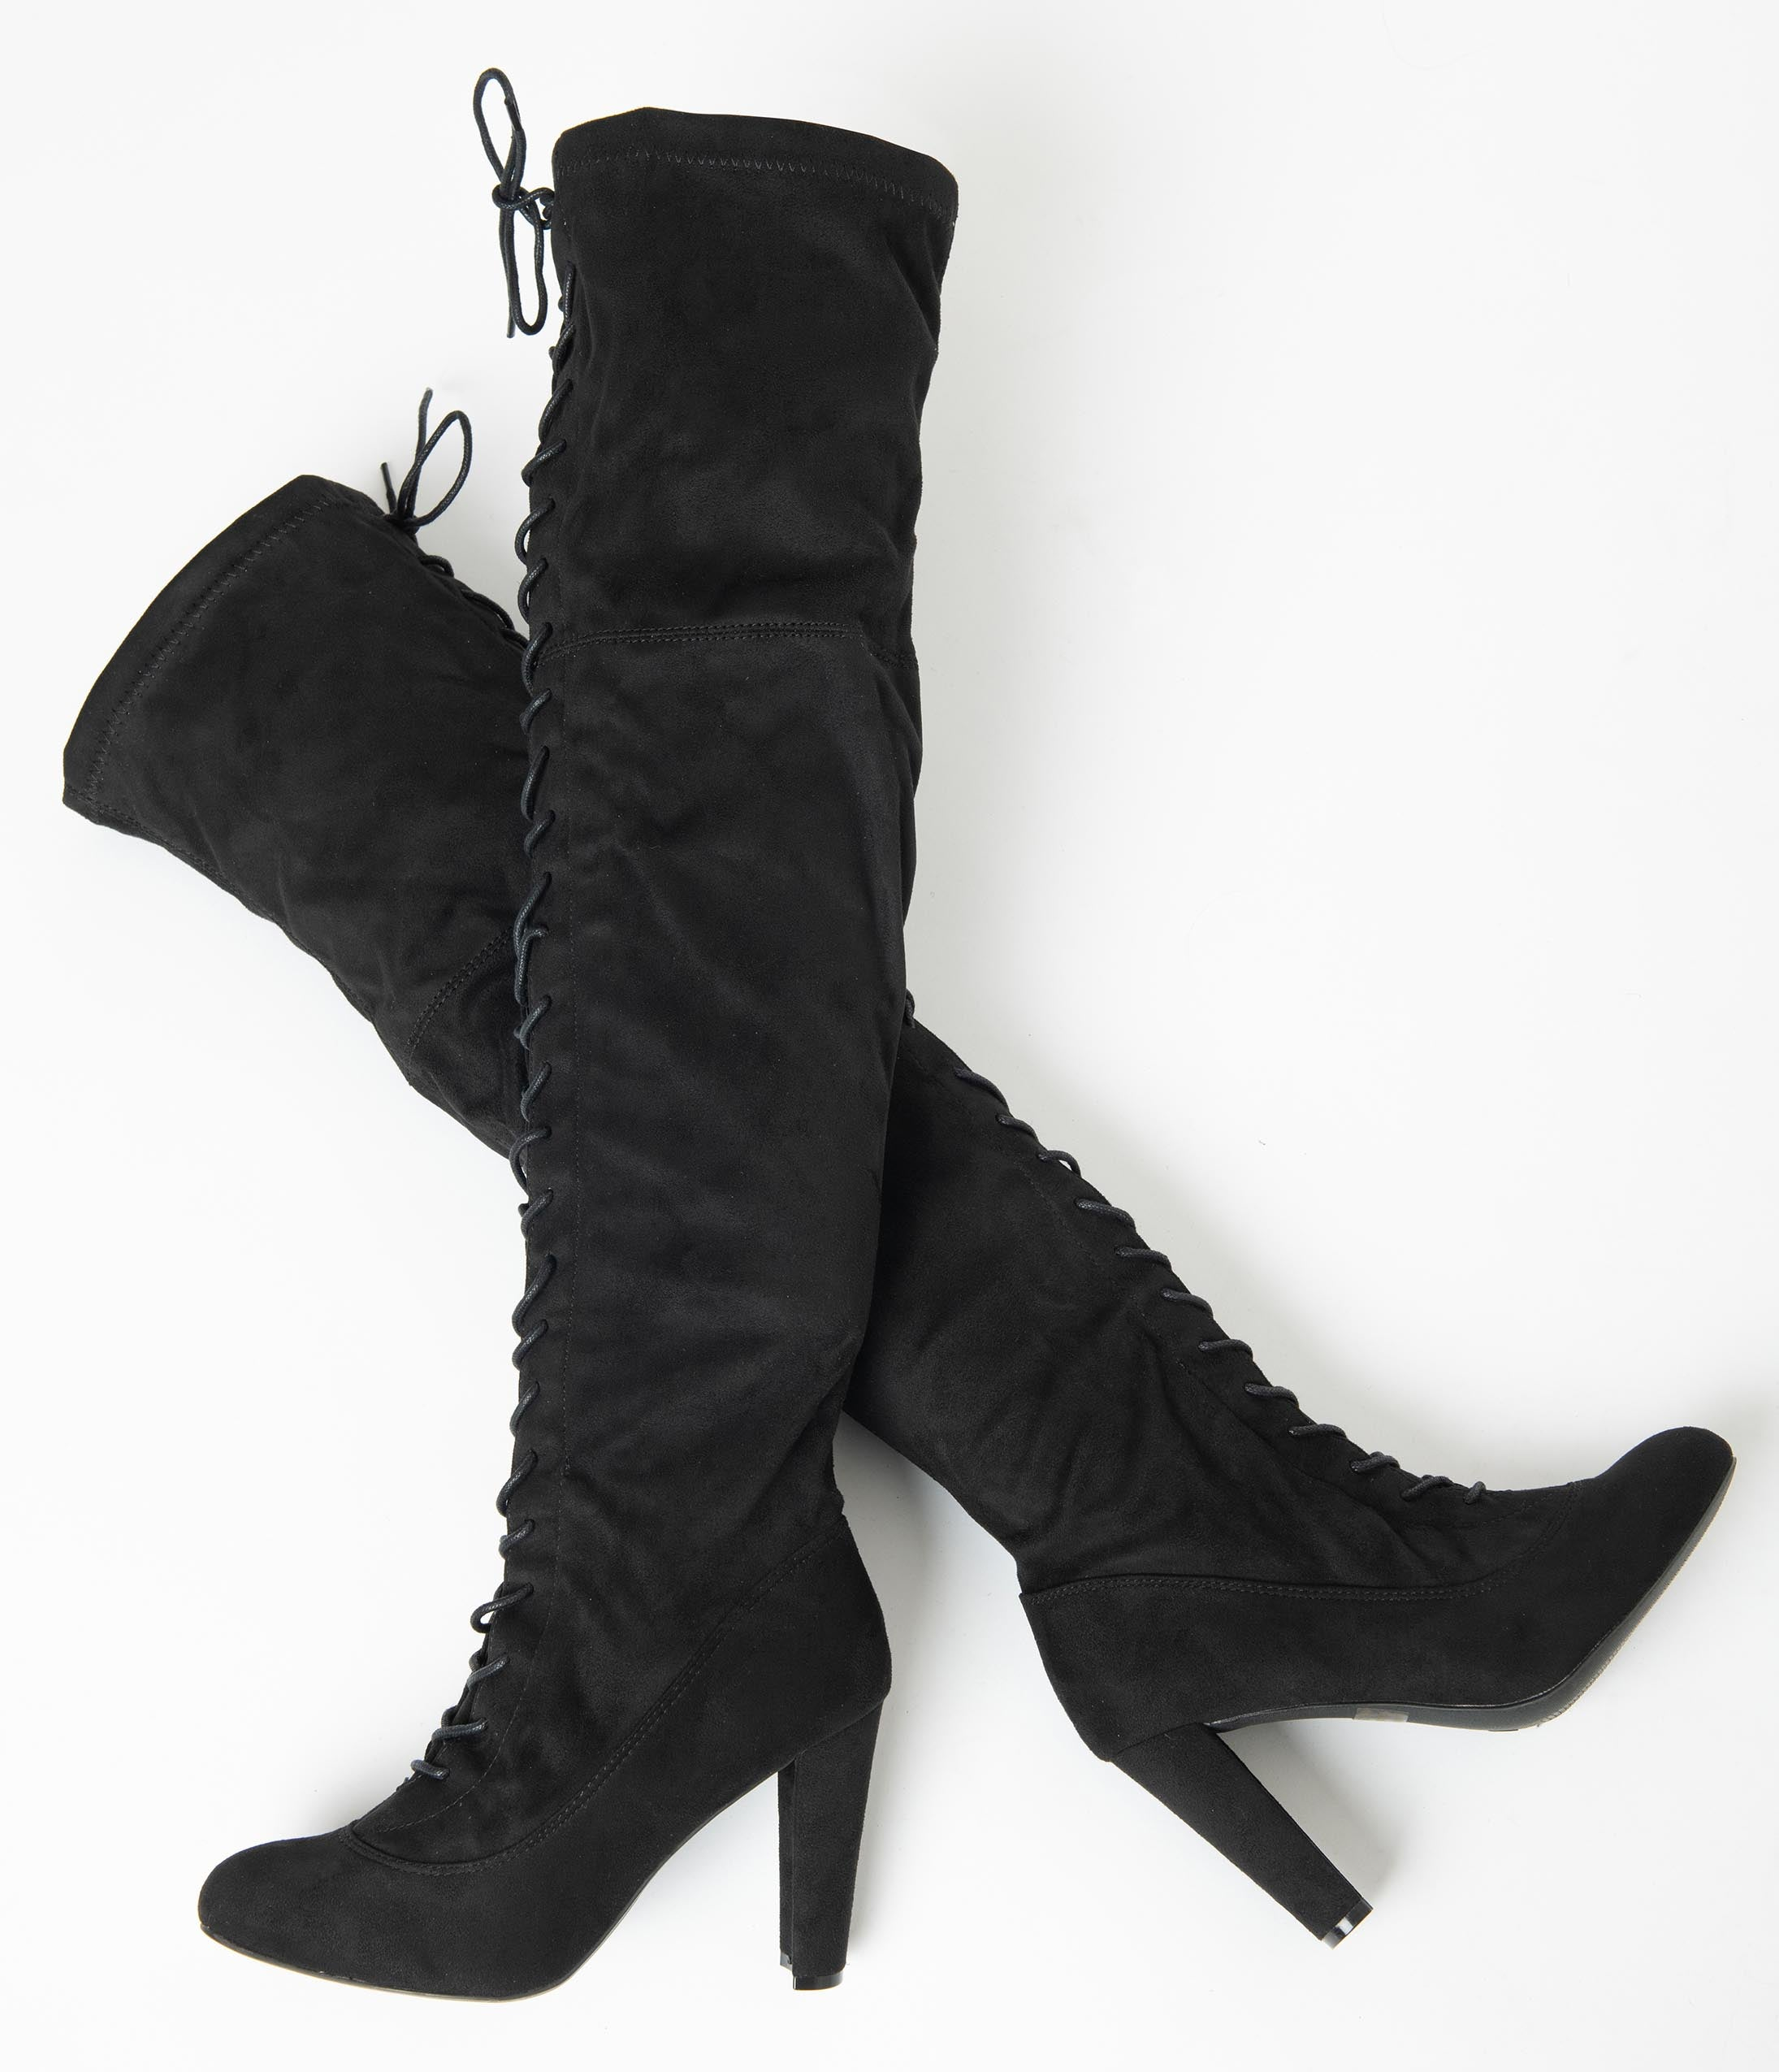 70s Shoes, Platforms, Boots, Heels | 1970s Shoes Black Suede Lace Up Knee High Boots $78.00 AT vintagedancer.com